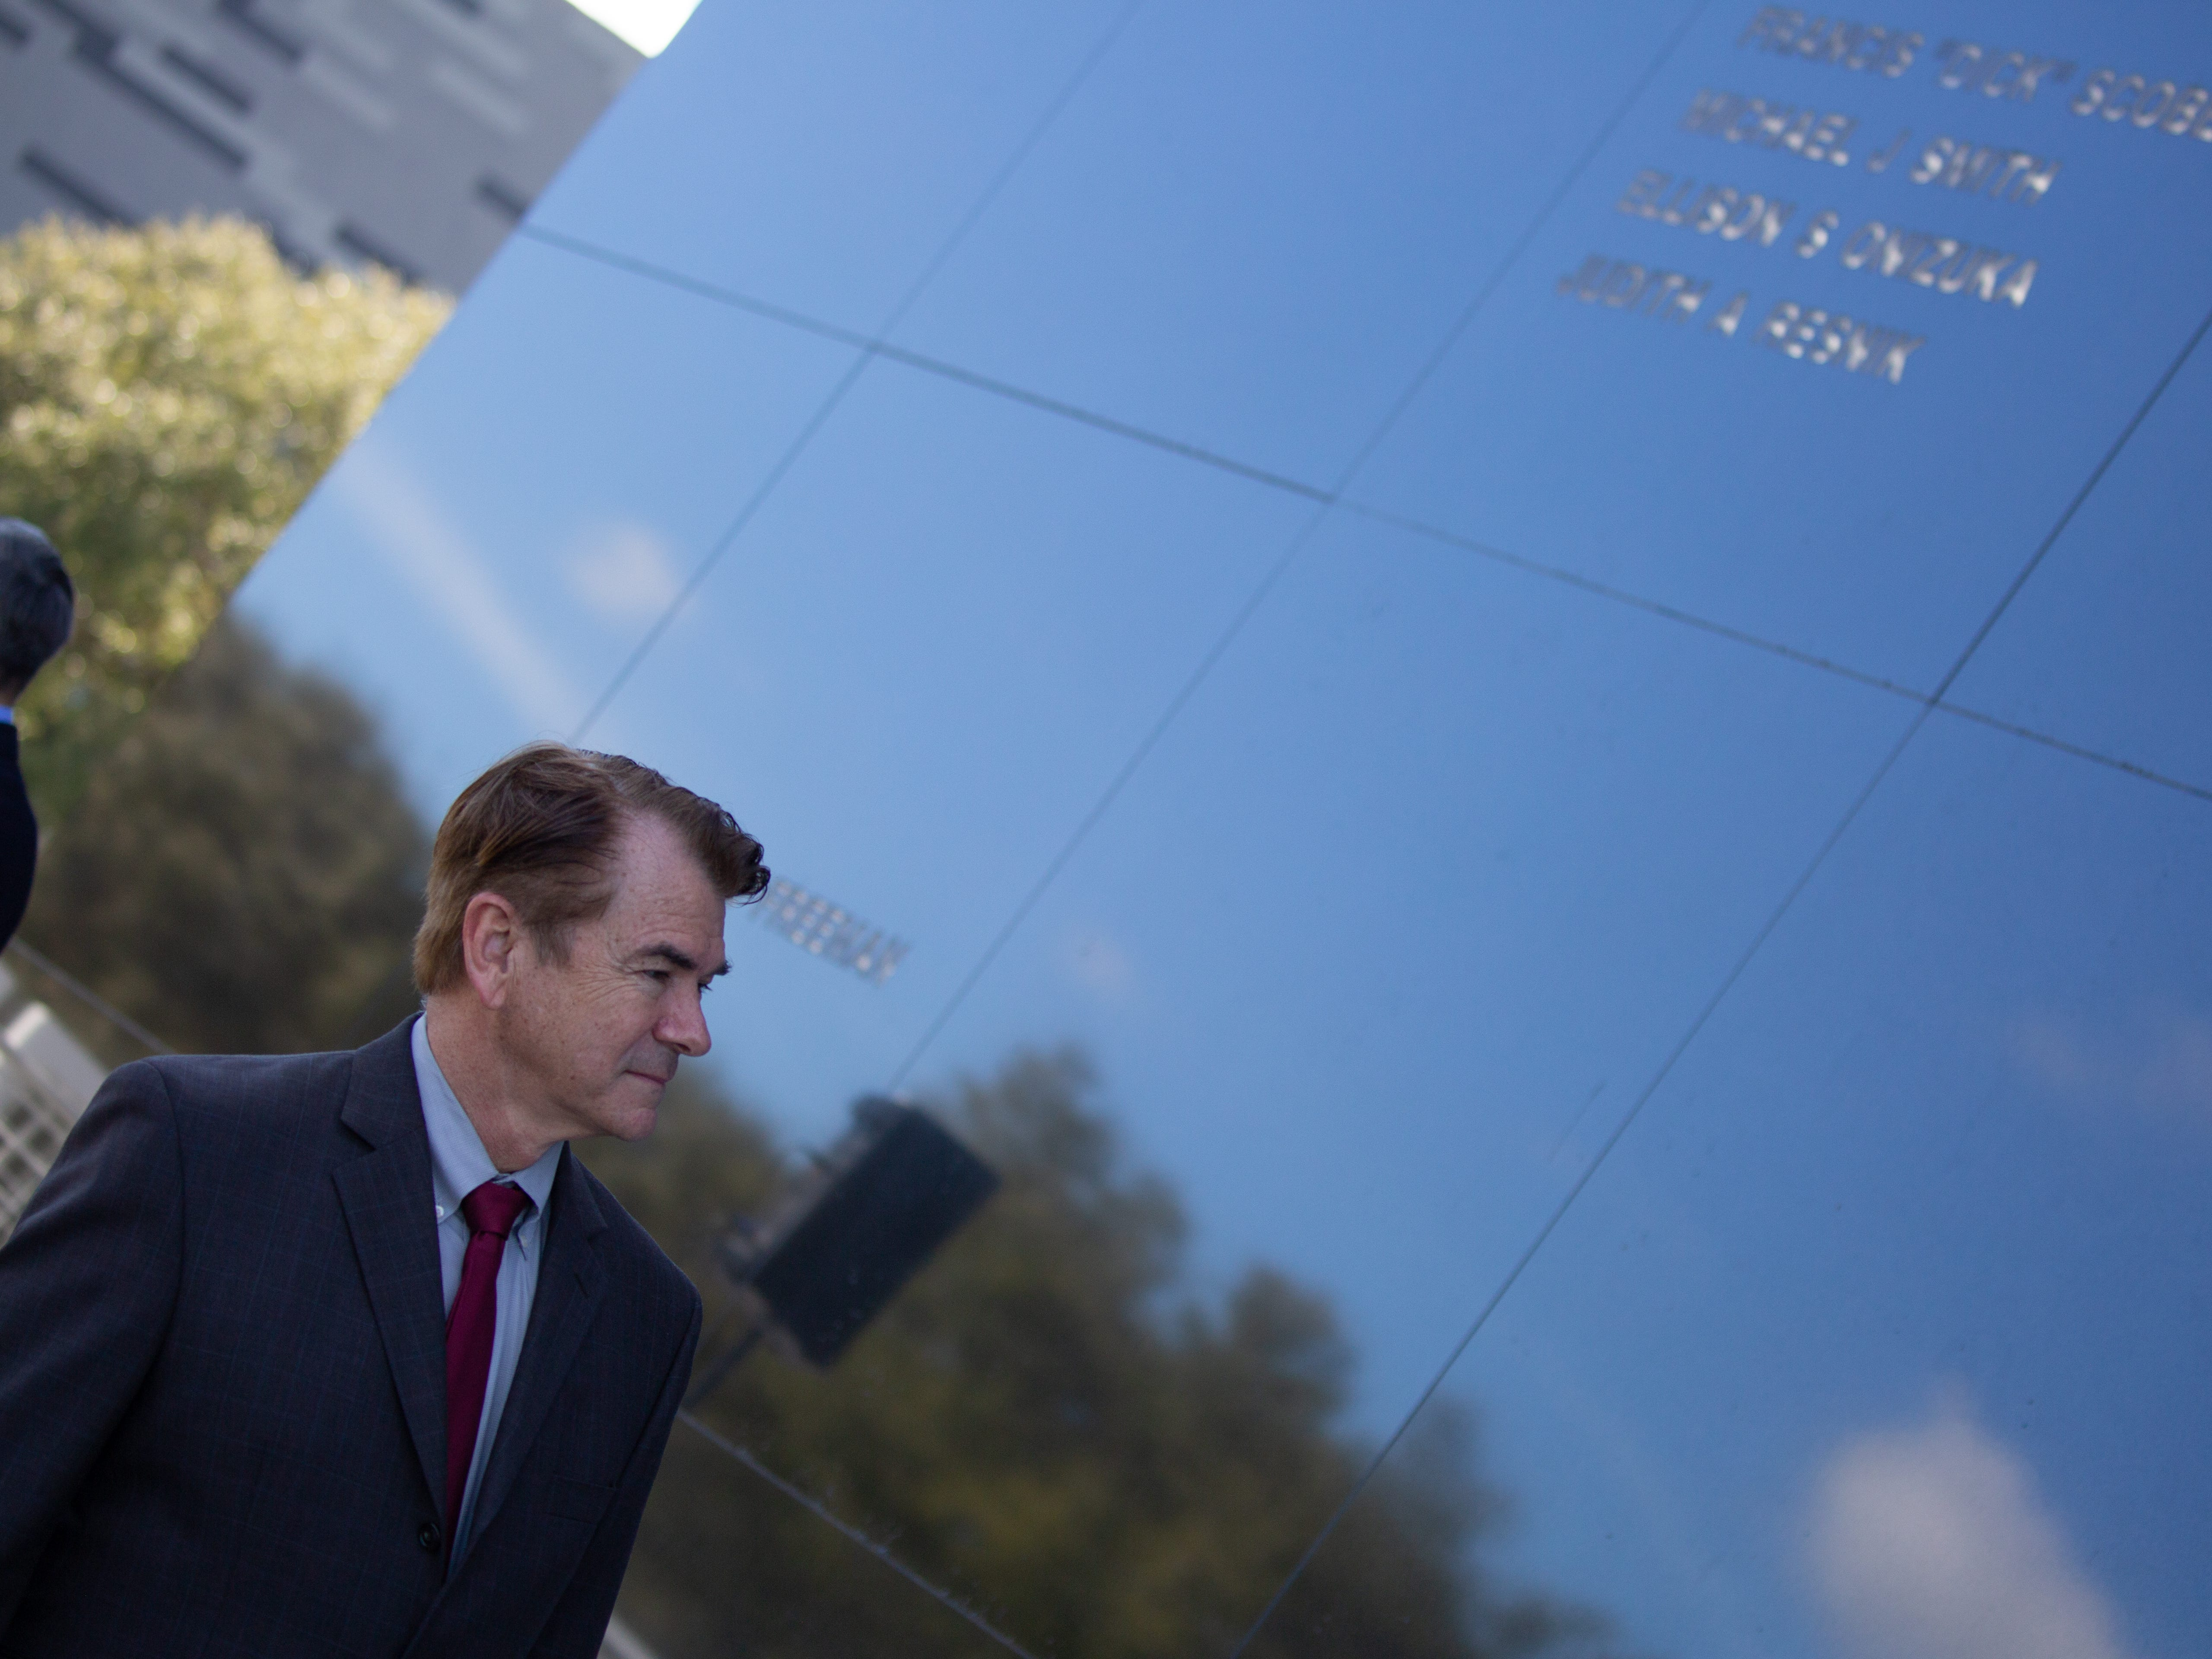 Florida House of Representatives' Thad Altman looks at the names of fallen astronauts on the Space Mirror Memorial during NASA's Day of Remembrance on Thursday, Feb. 7, 2019.